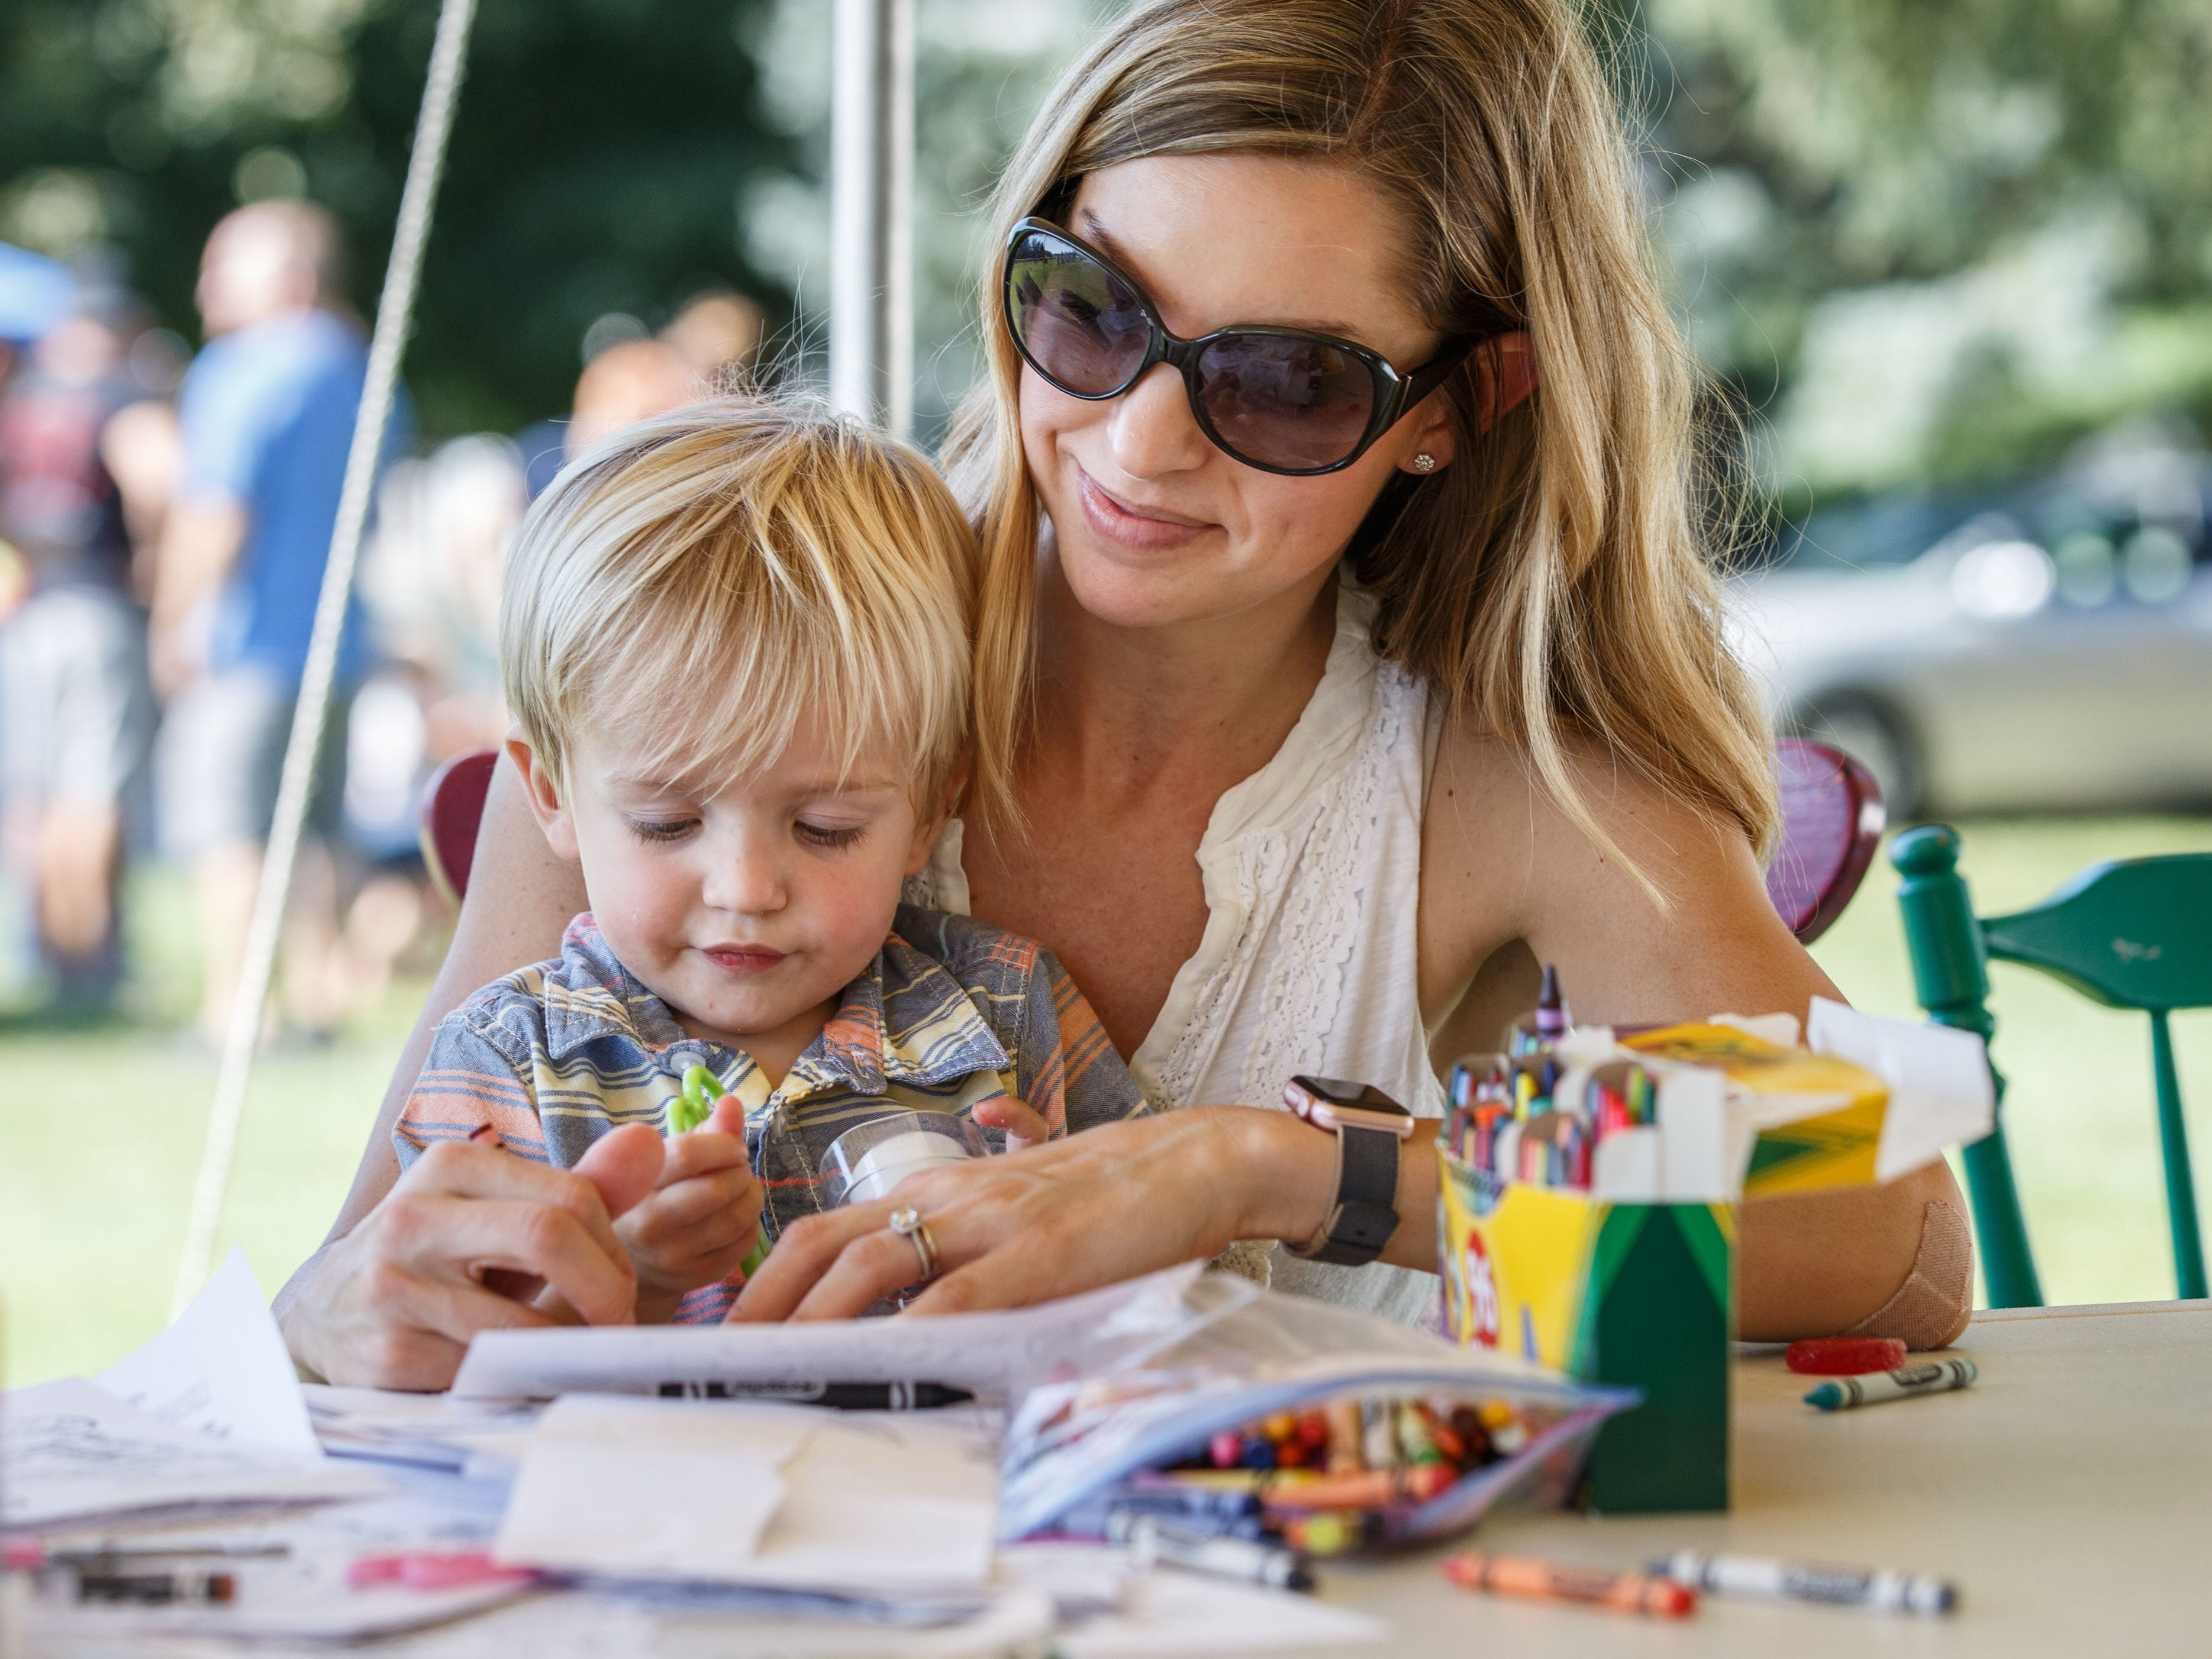 One-year-old Hank Steiner of Pewaukee works on a craft project with his mother Megan during the annual North Lake Harvest Fest on Saturday, Sept. 15, 2018. The free event includes a parade, vendor market, food trucks, live music, tractor pulls, face painting, kids activities and more.